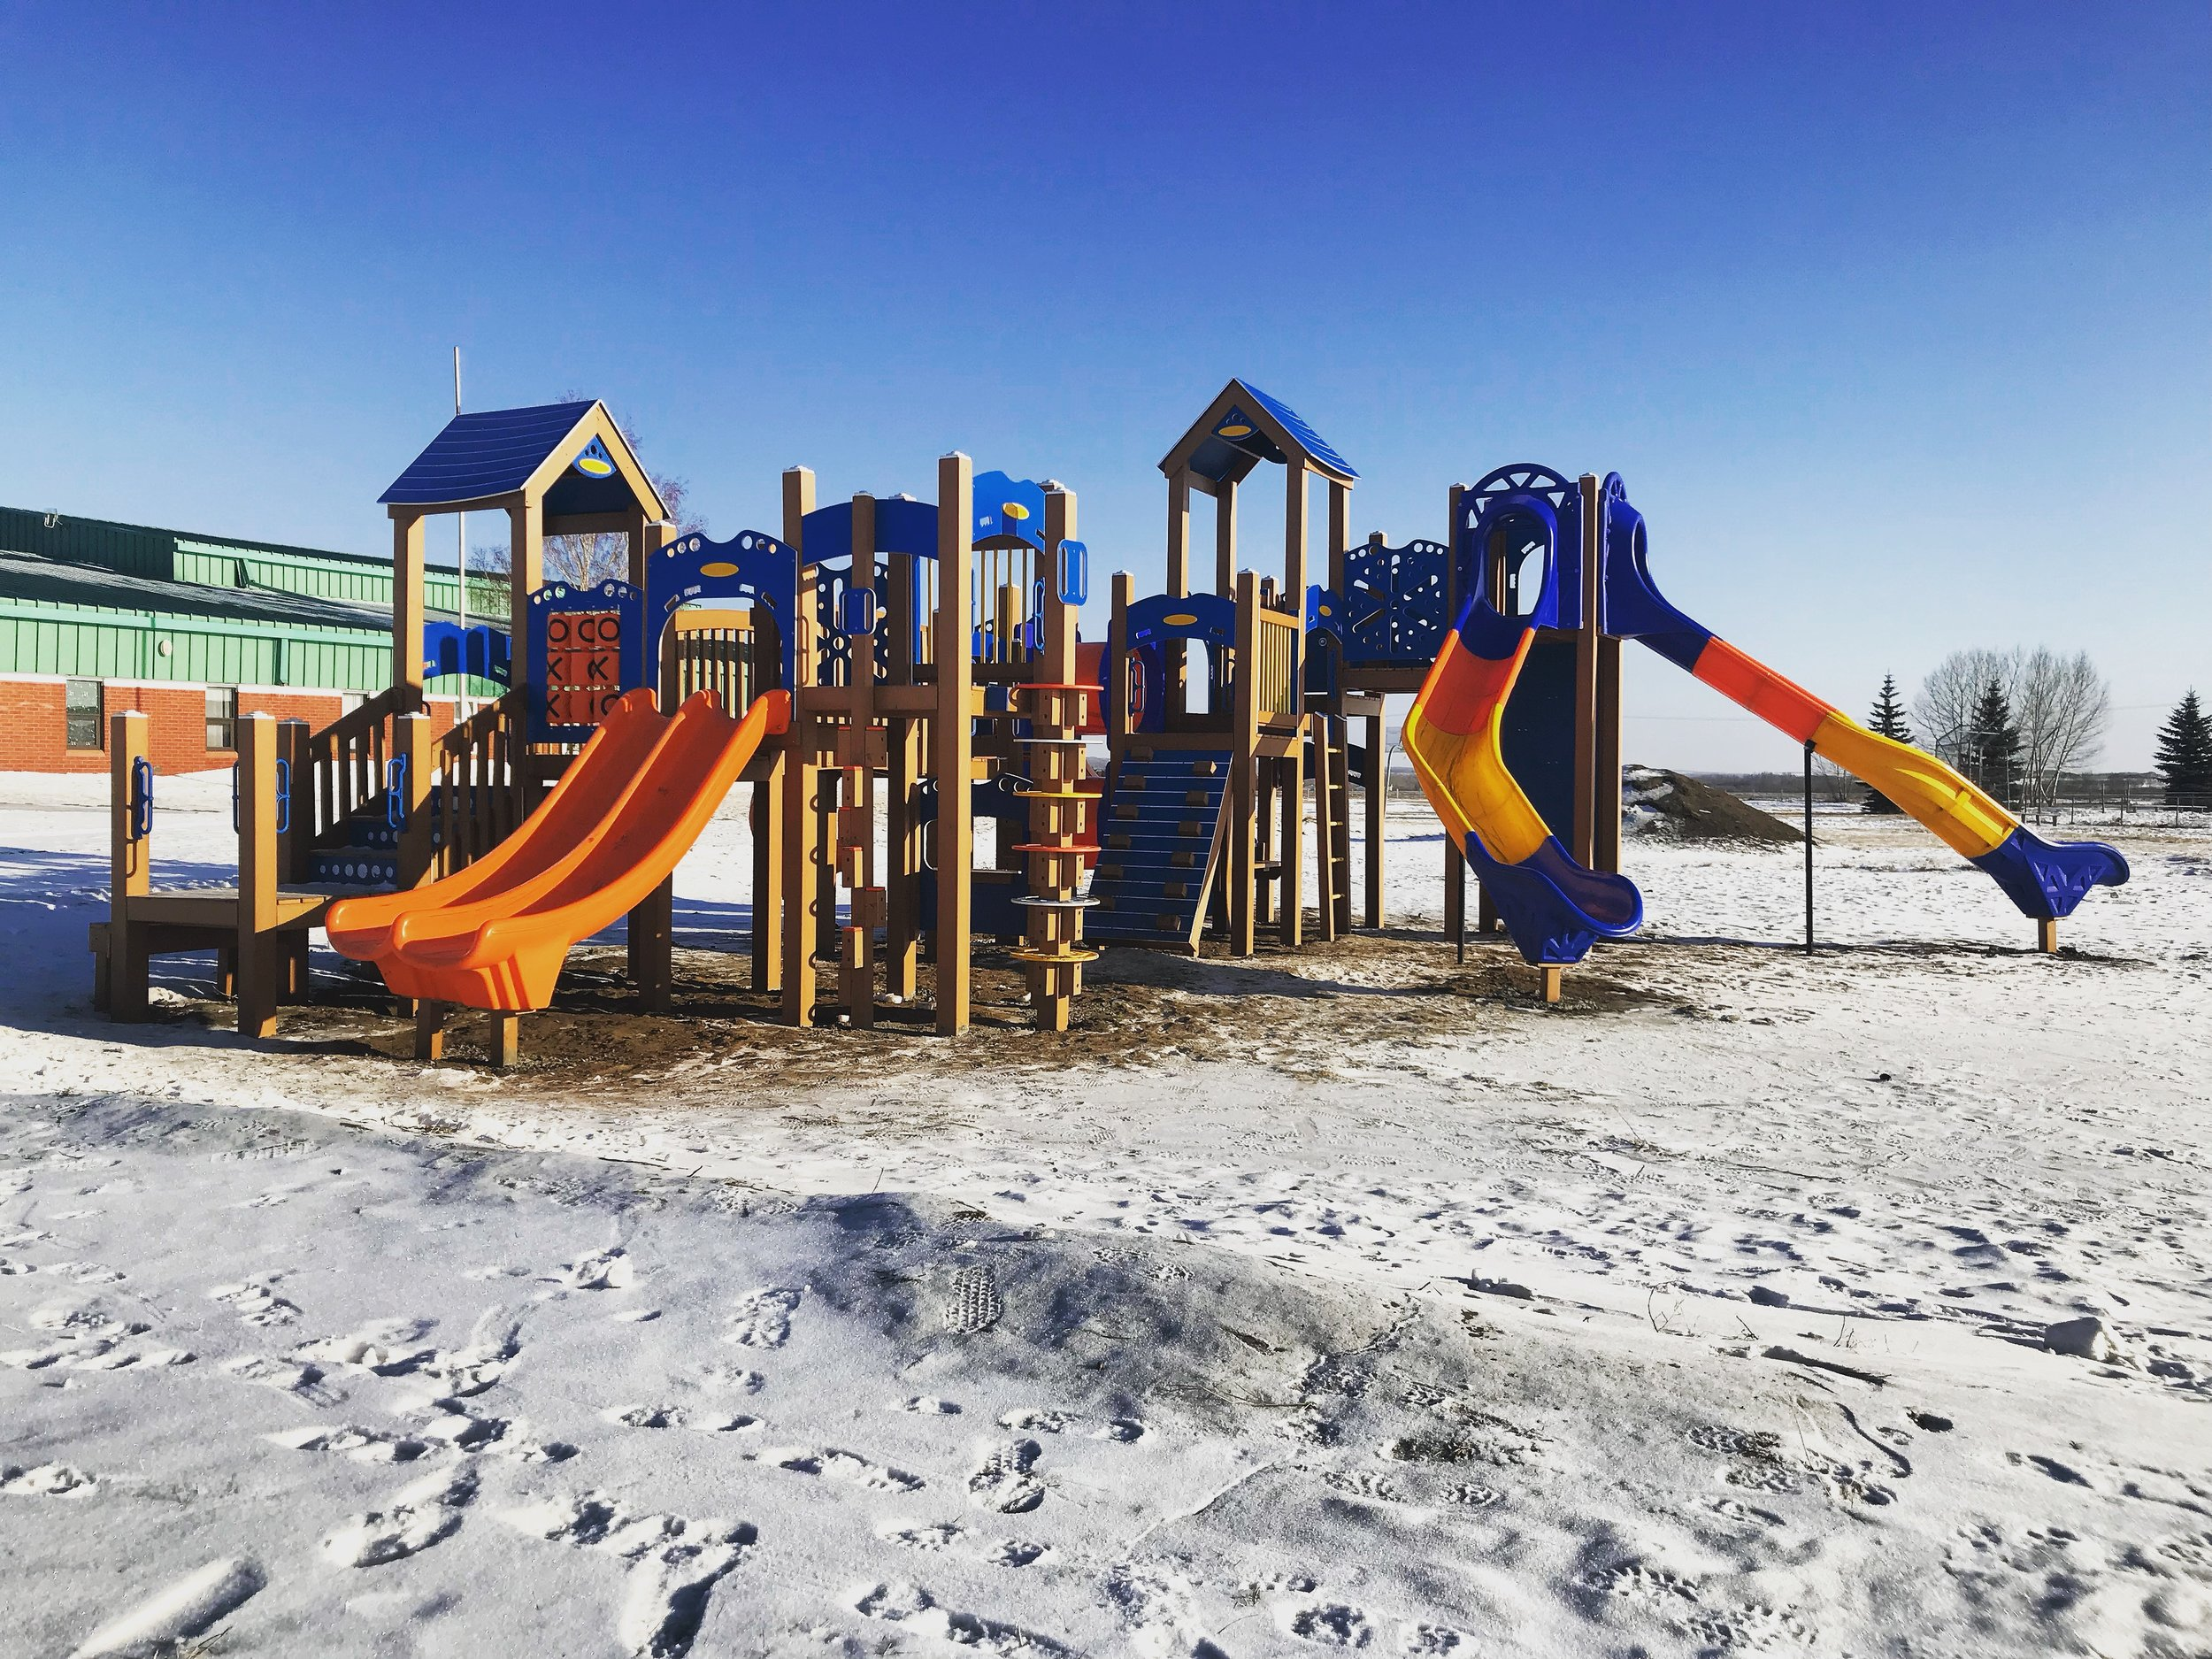 New Playground installed October, 2017. Shout out to Marlene Chickeness for being a backbone for children and community organizing - as well as Chief Poundmaker School Staff.